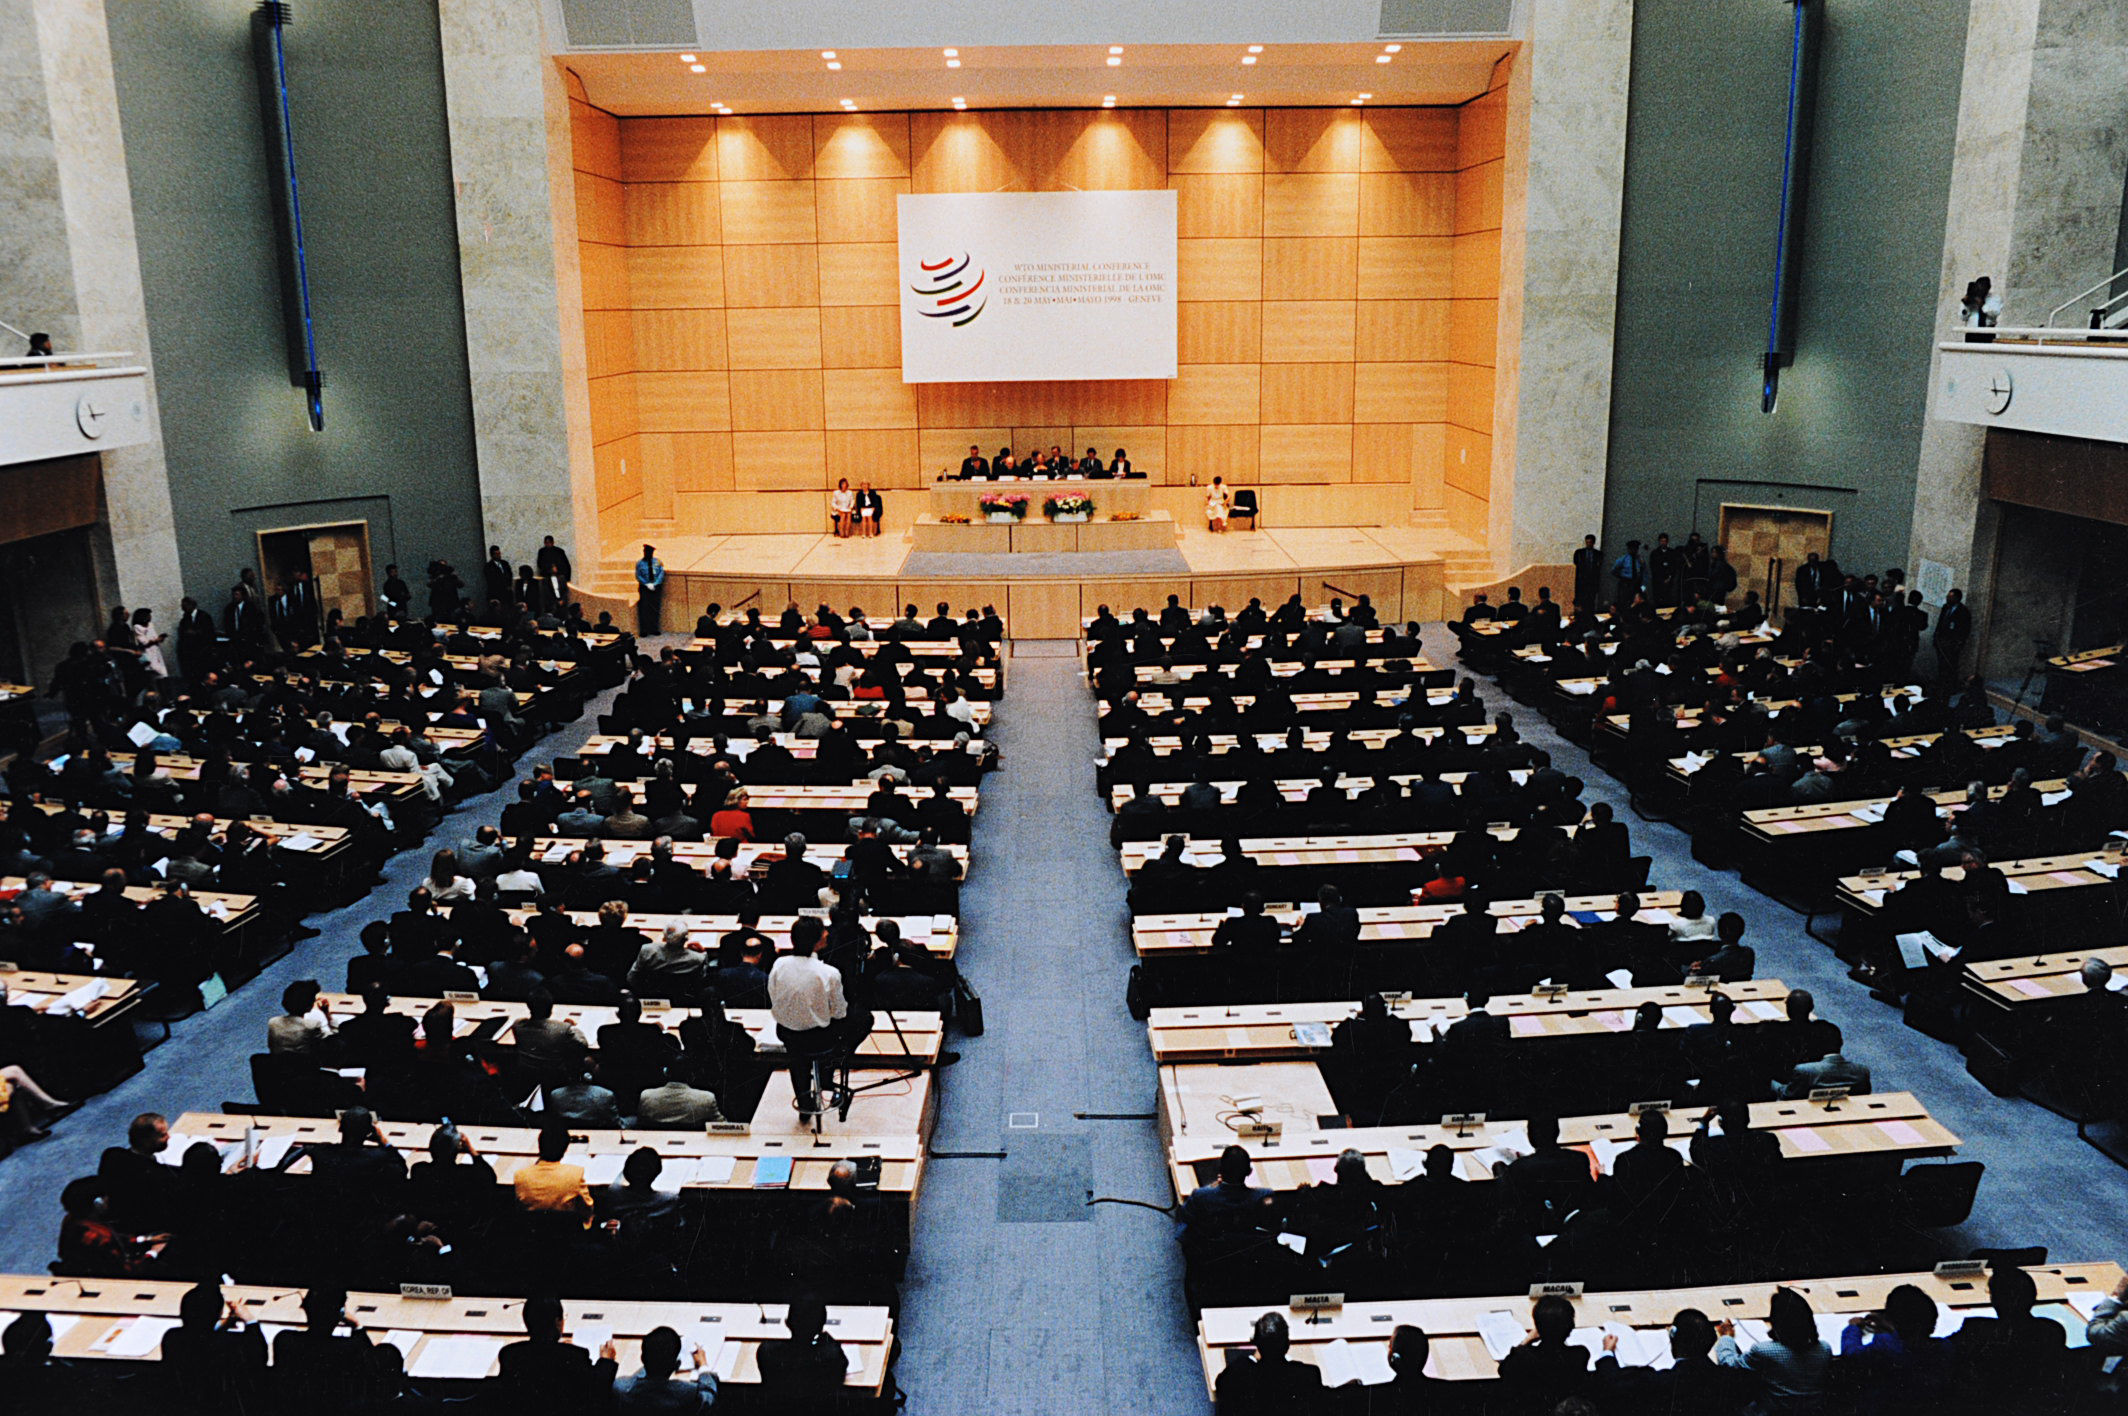 The Wto Has Failed As A Multilateral Agency In Promoting